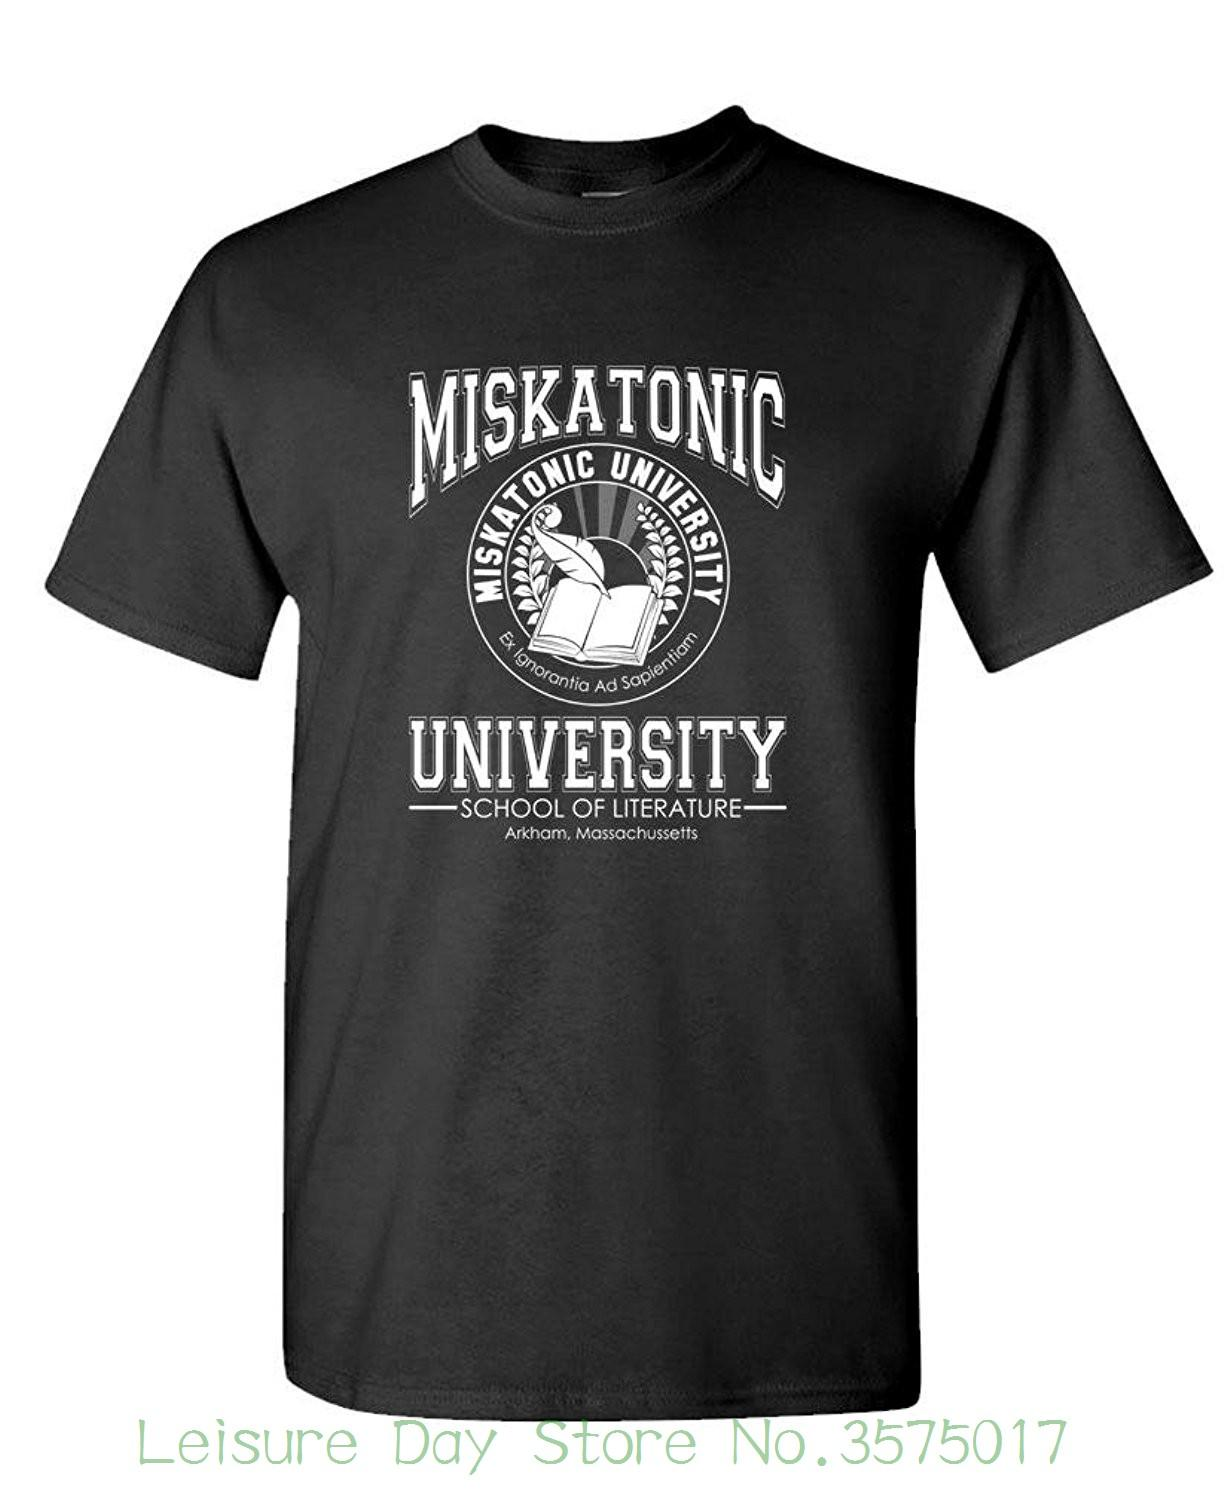 Summer man t shirt tops tees new live nice miskatonic literature mens cotton online with 17 71 piece on funnyteestores store dhgate com